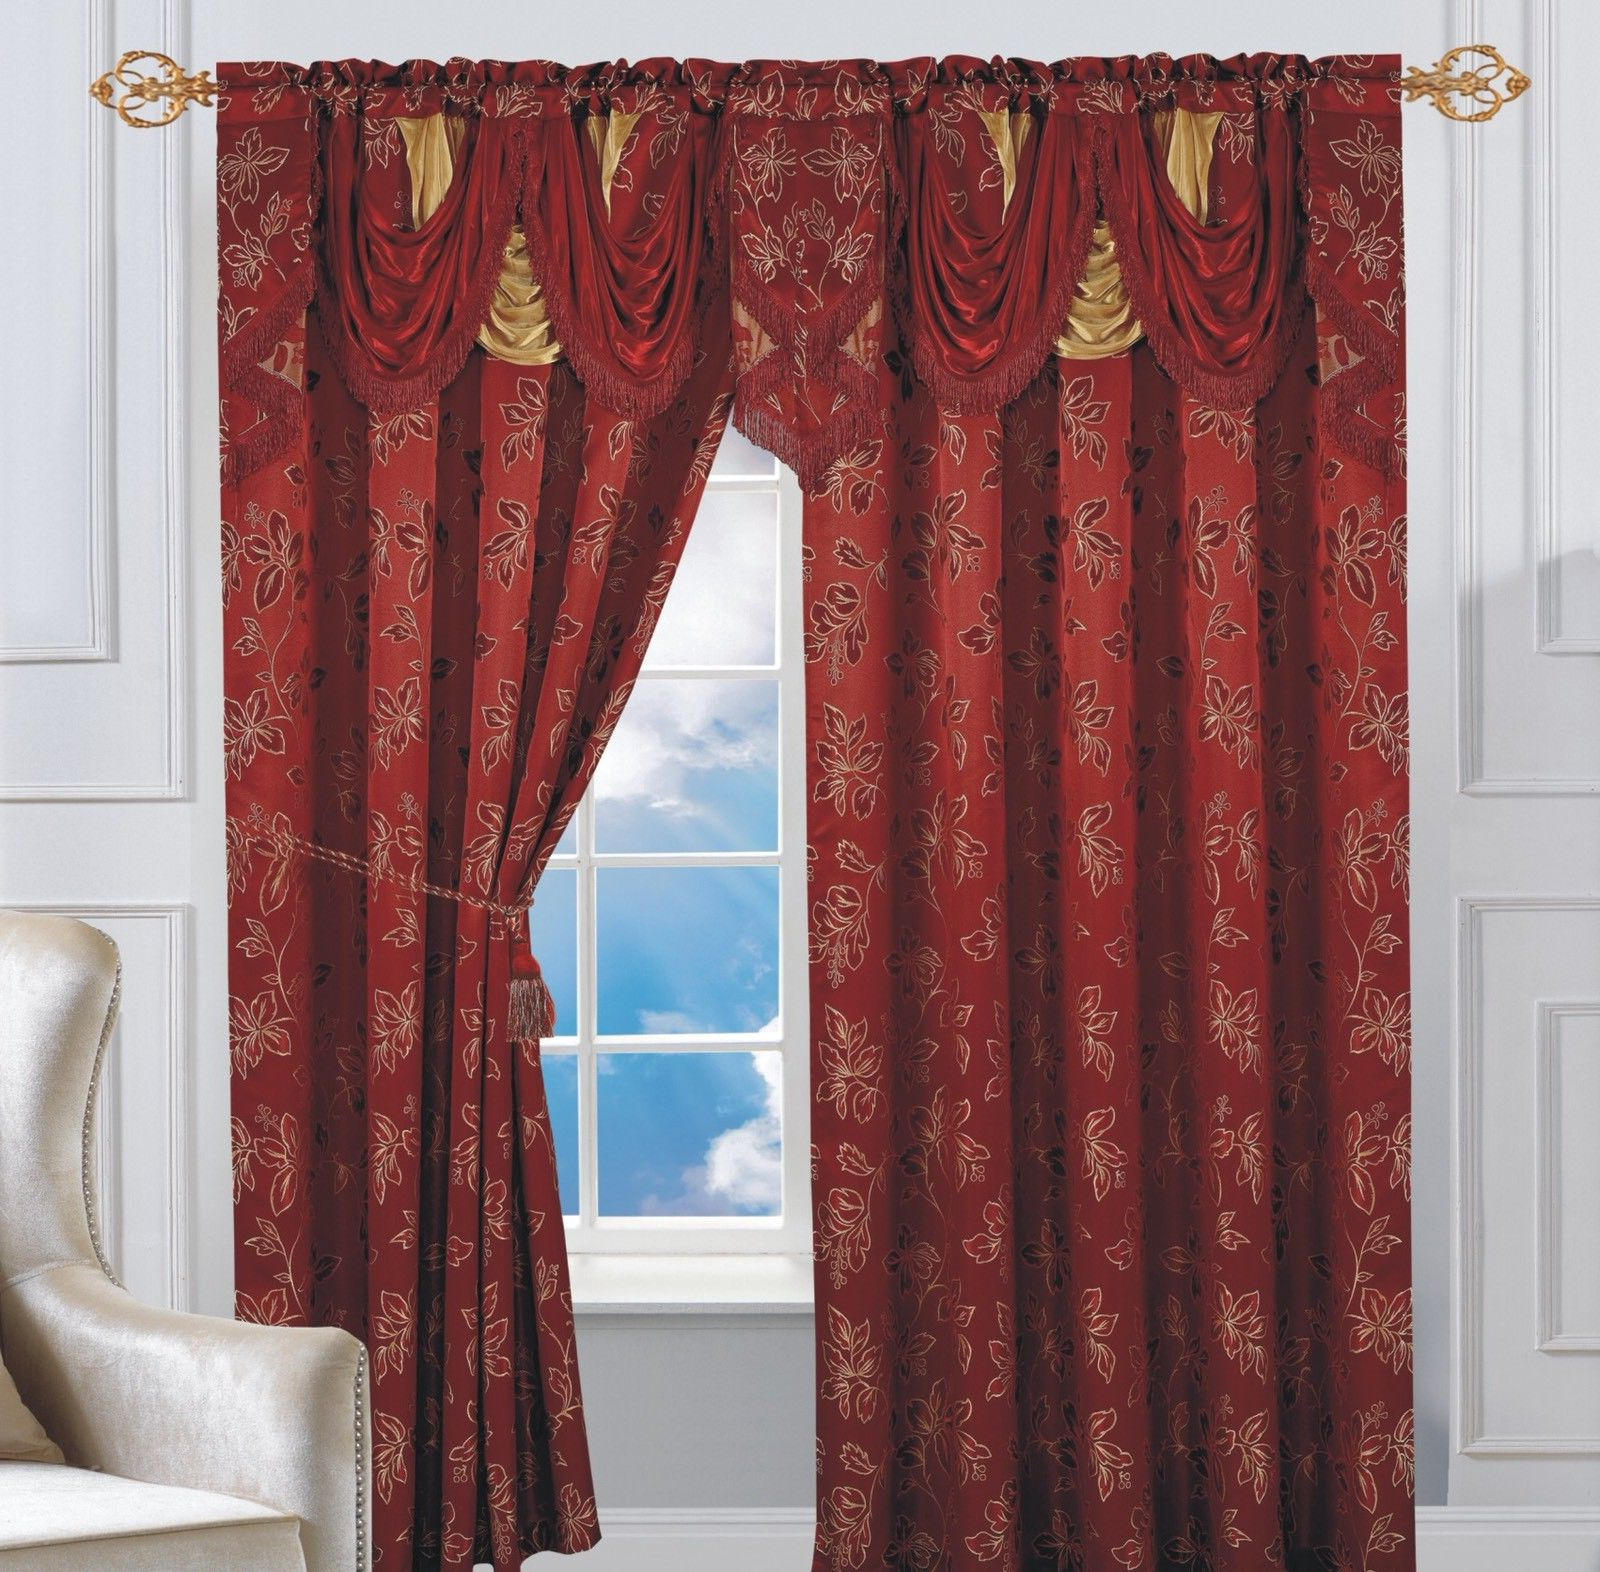 Elegant Comfort Luxury Penelopie Jacquard Window Curtain Panel Pairs Throughout Most Up To Date Set Of 2 Elegant Comfort Penelopie Jacquard Look Curtain Panel, Burgundy (View 9 of 20)